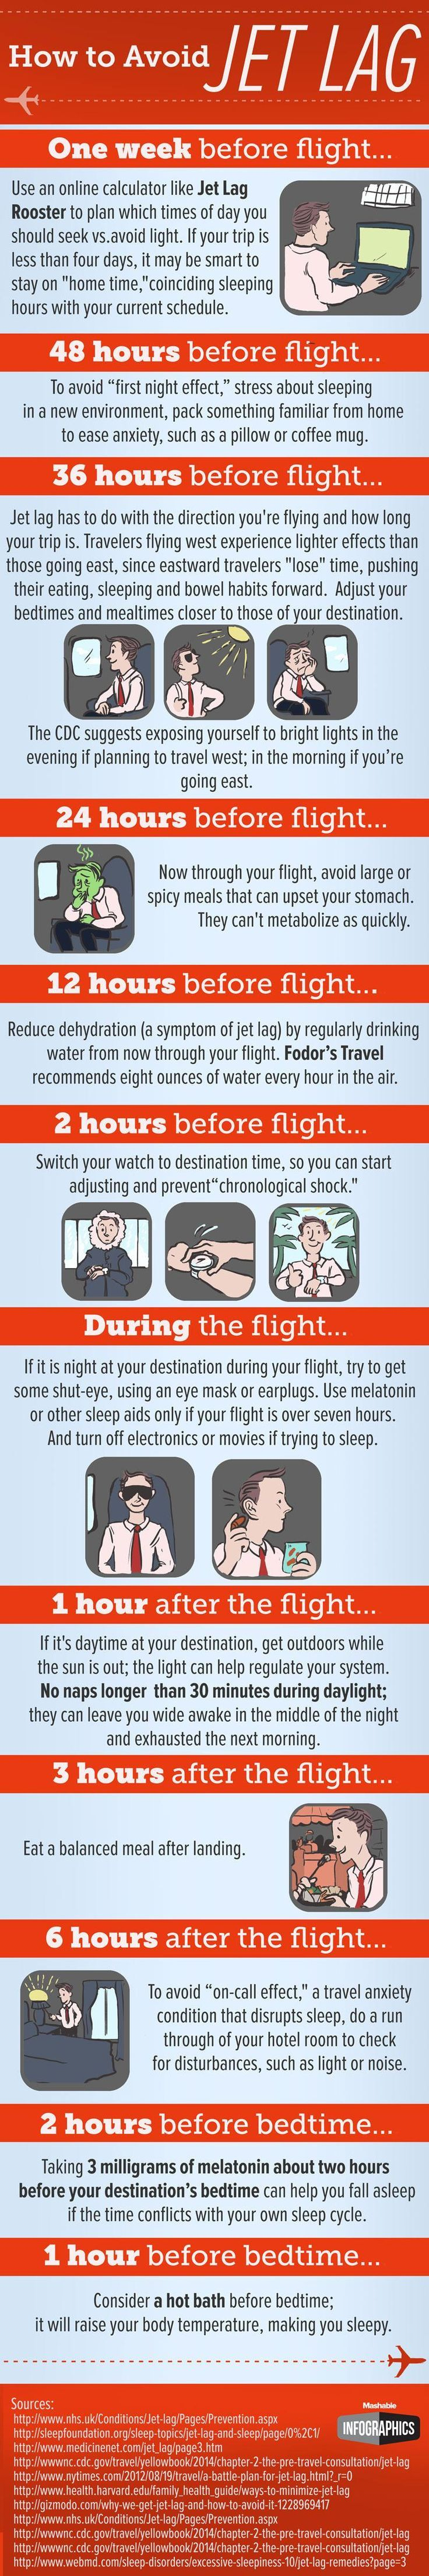 Are you a Traveller? Jet Lag bothers you?. Prepare yourself prior to travelling. #TravelTips #TravelFacts